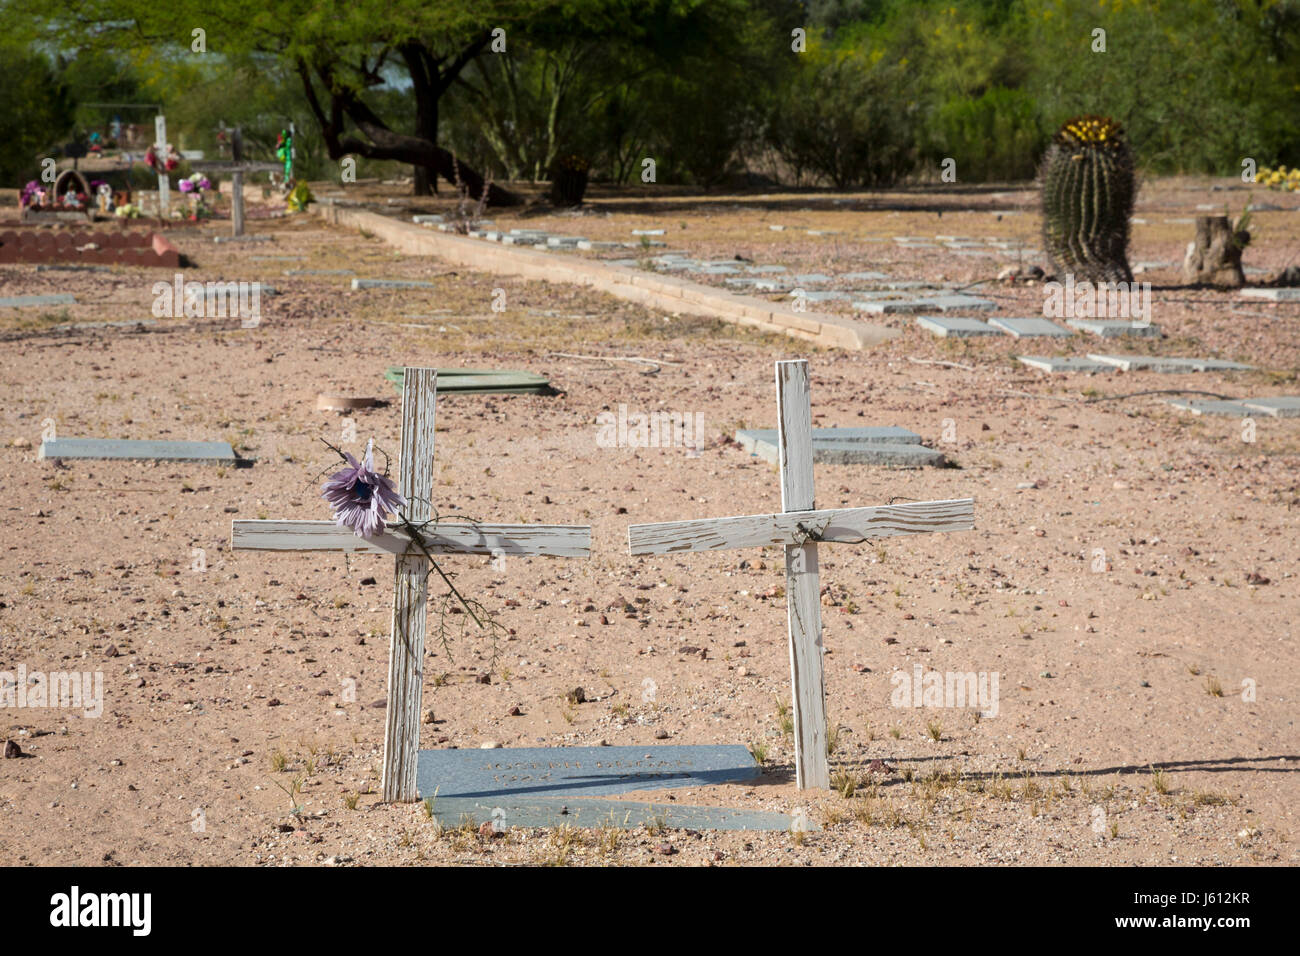 Tucson, Arizona - The Pima County Cemetery, where the indigent, the homeless, and unidentified have been buried, - Stock Image